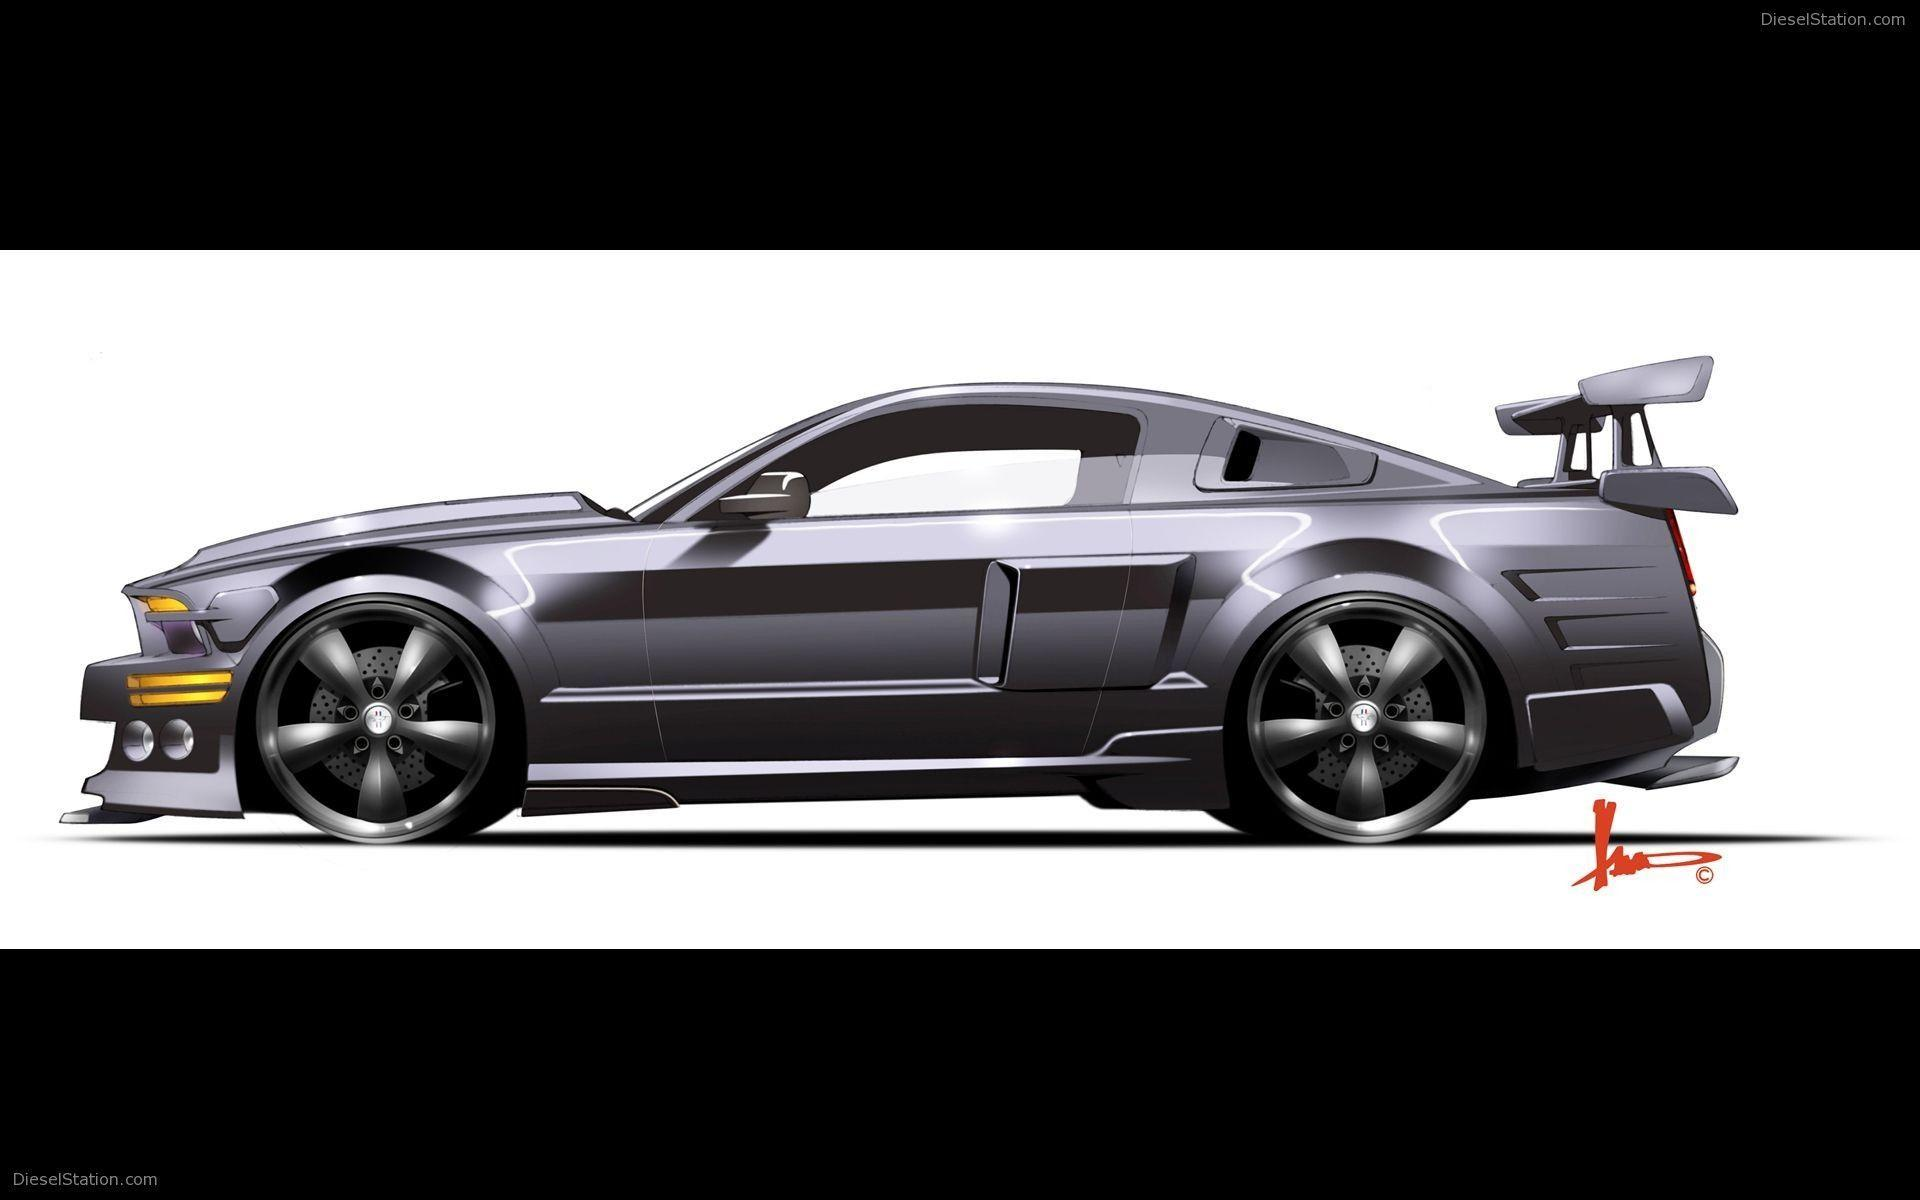 Knight Rider Shelby Mustang GT500KR Widescreen Exotic Car Picture